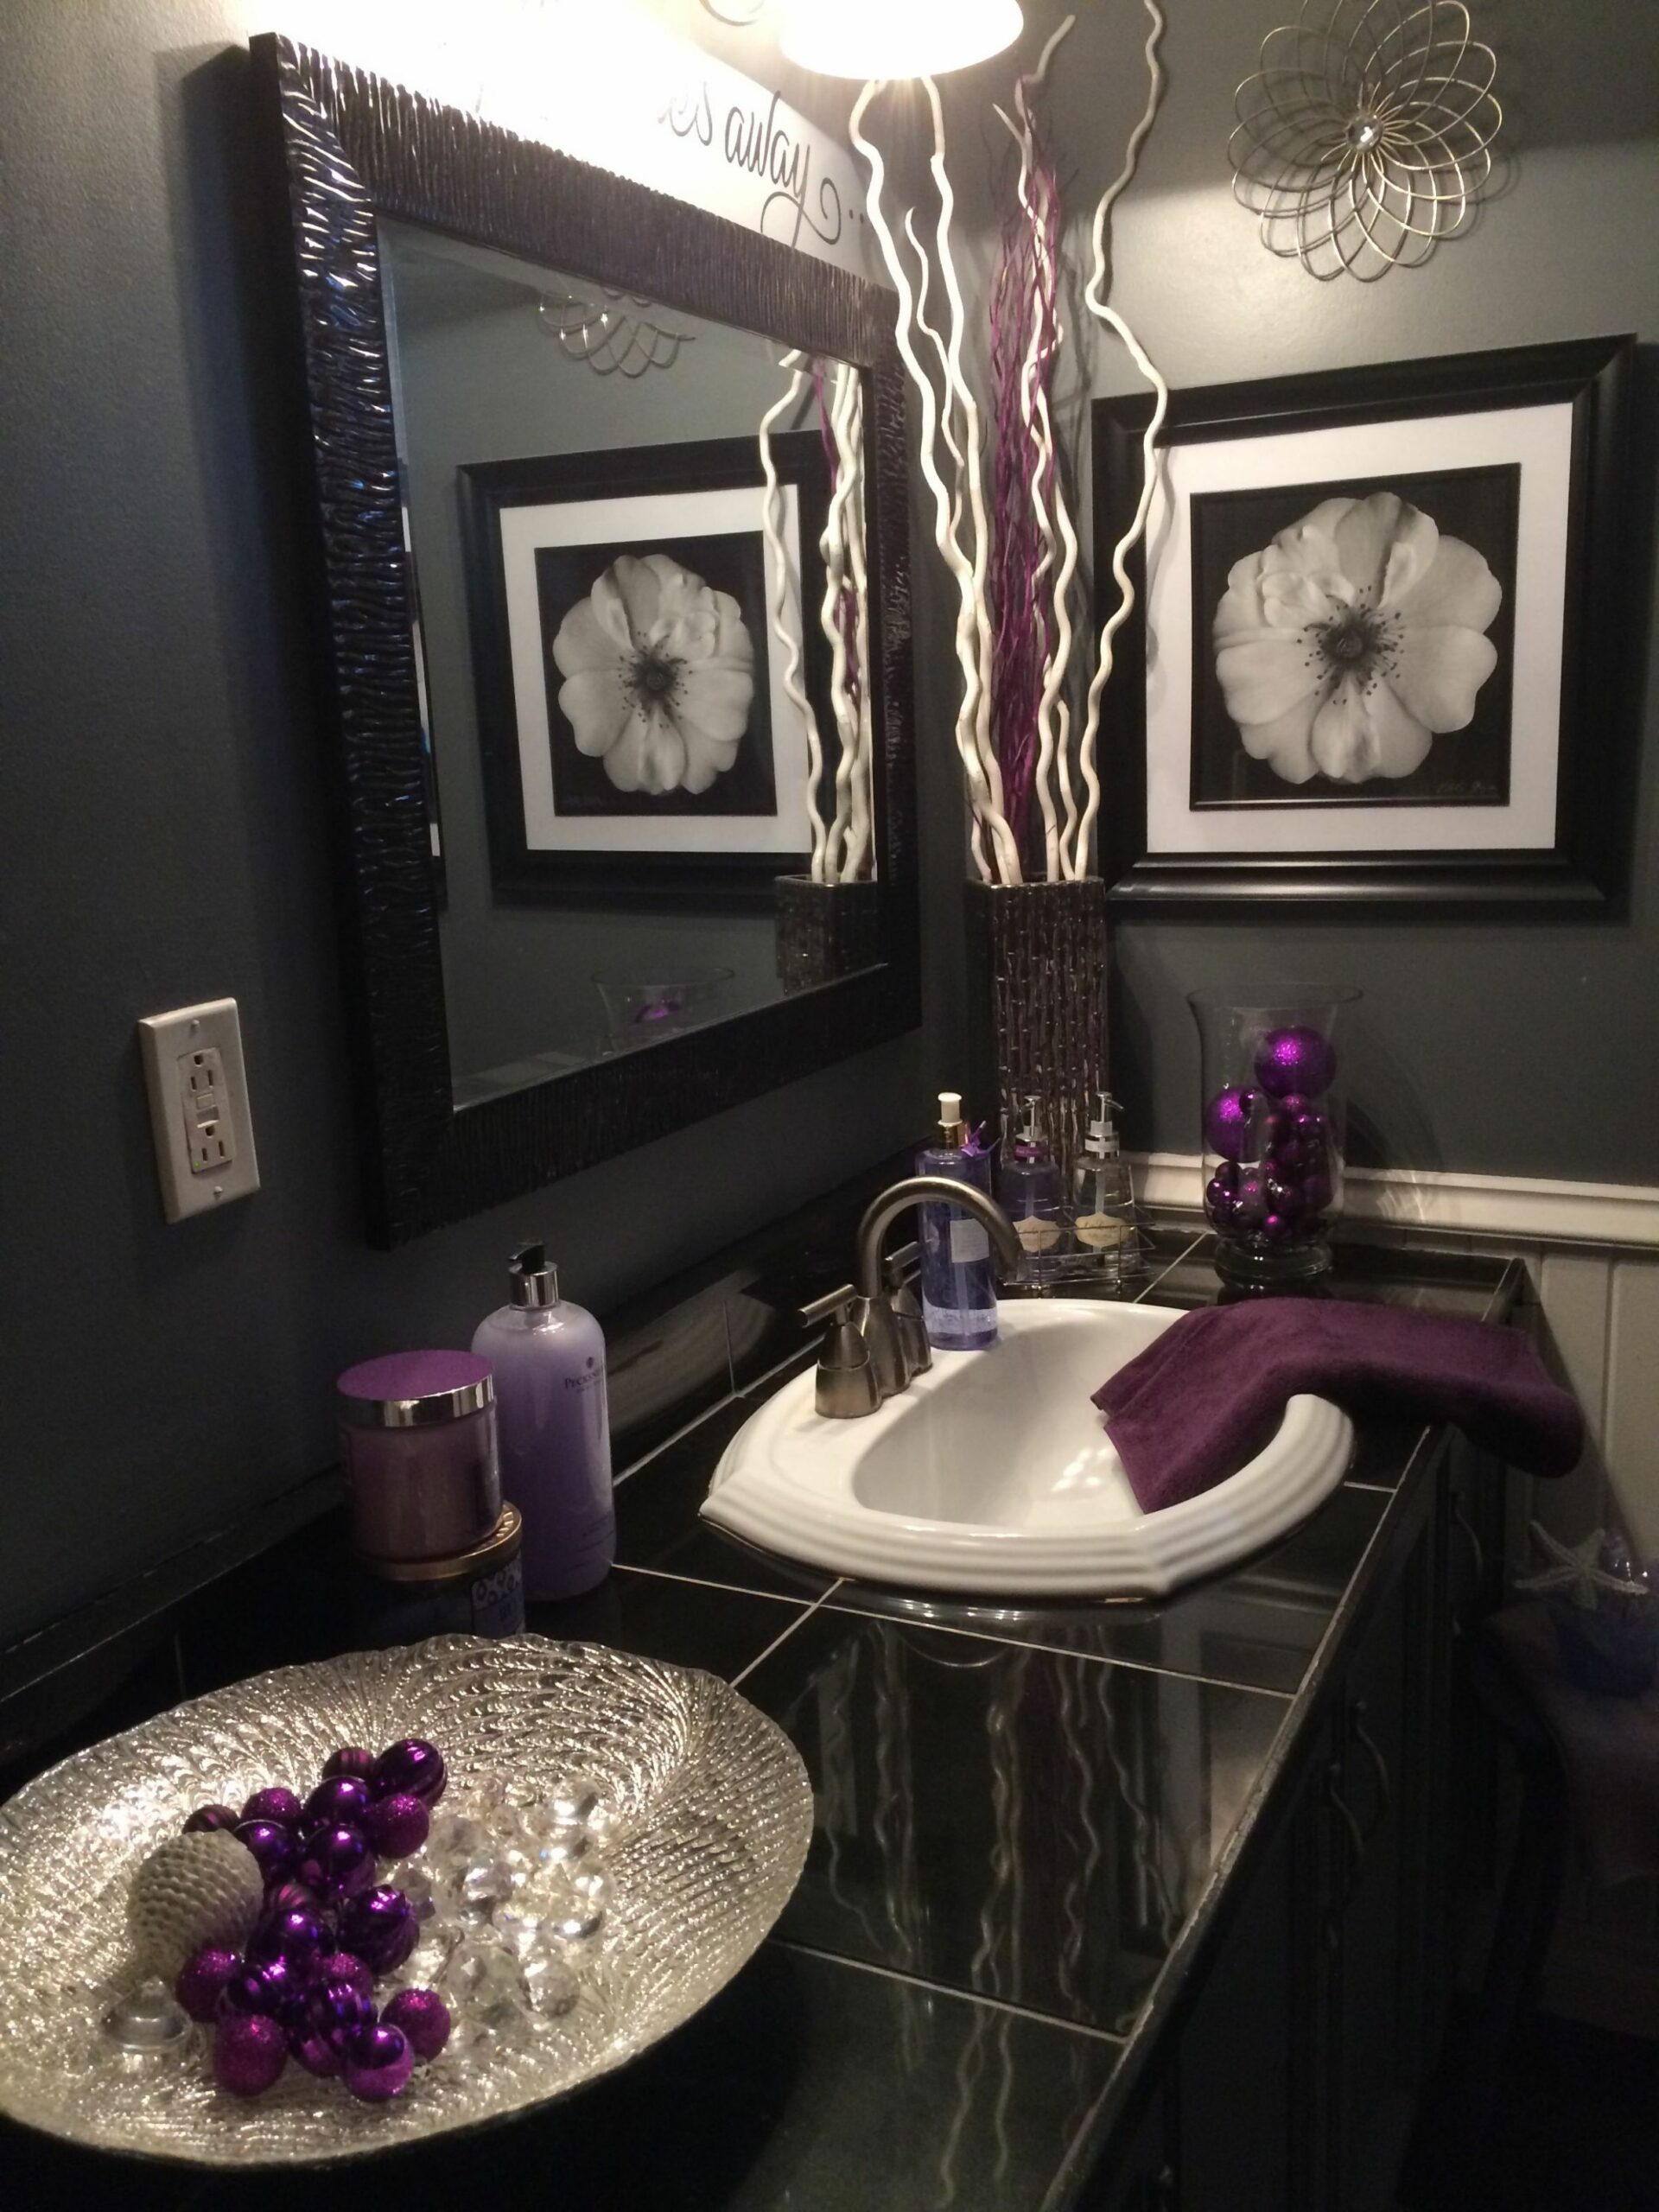 Black and grey bathroom with lavender accents (With images ..